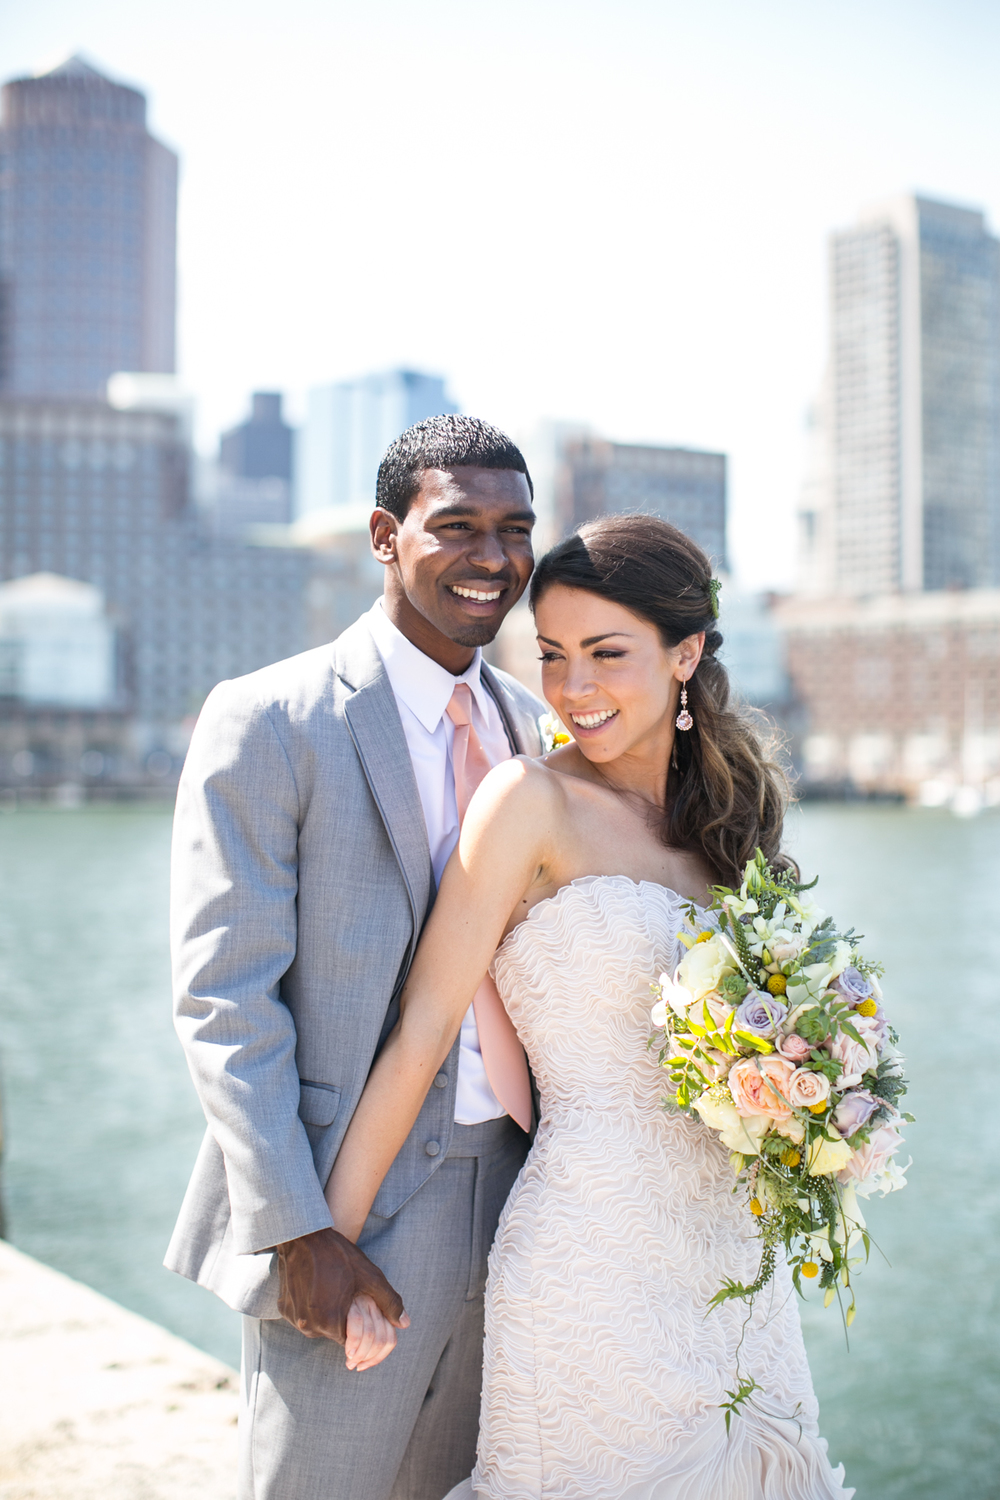 boston wedding celebration | image by lily glass